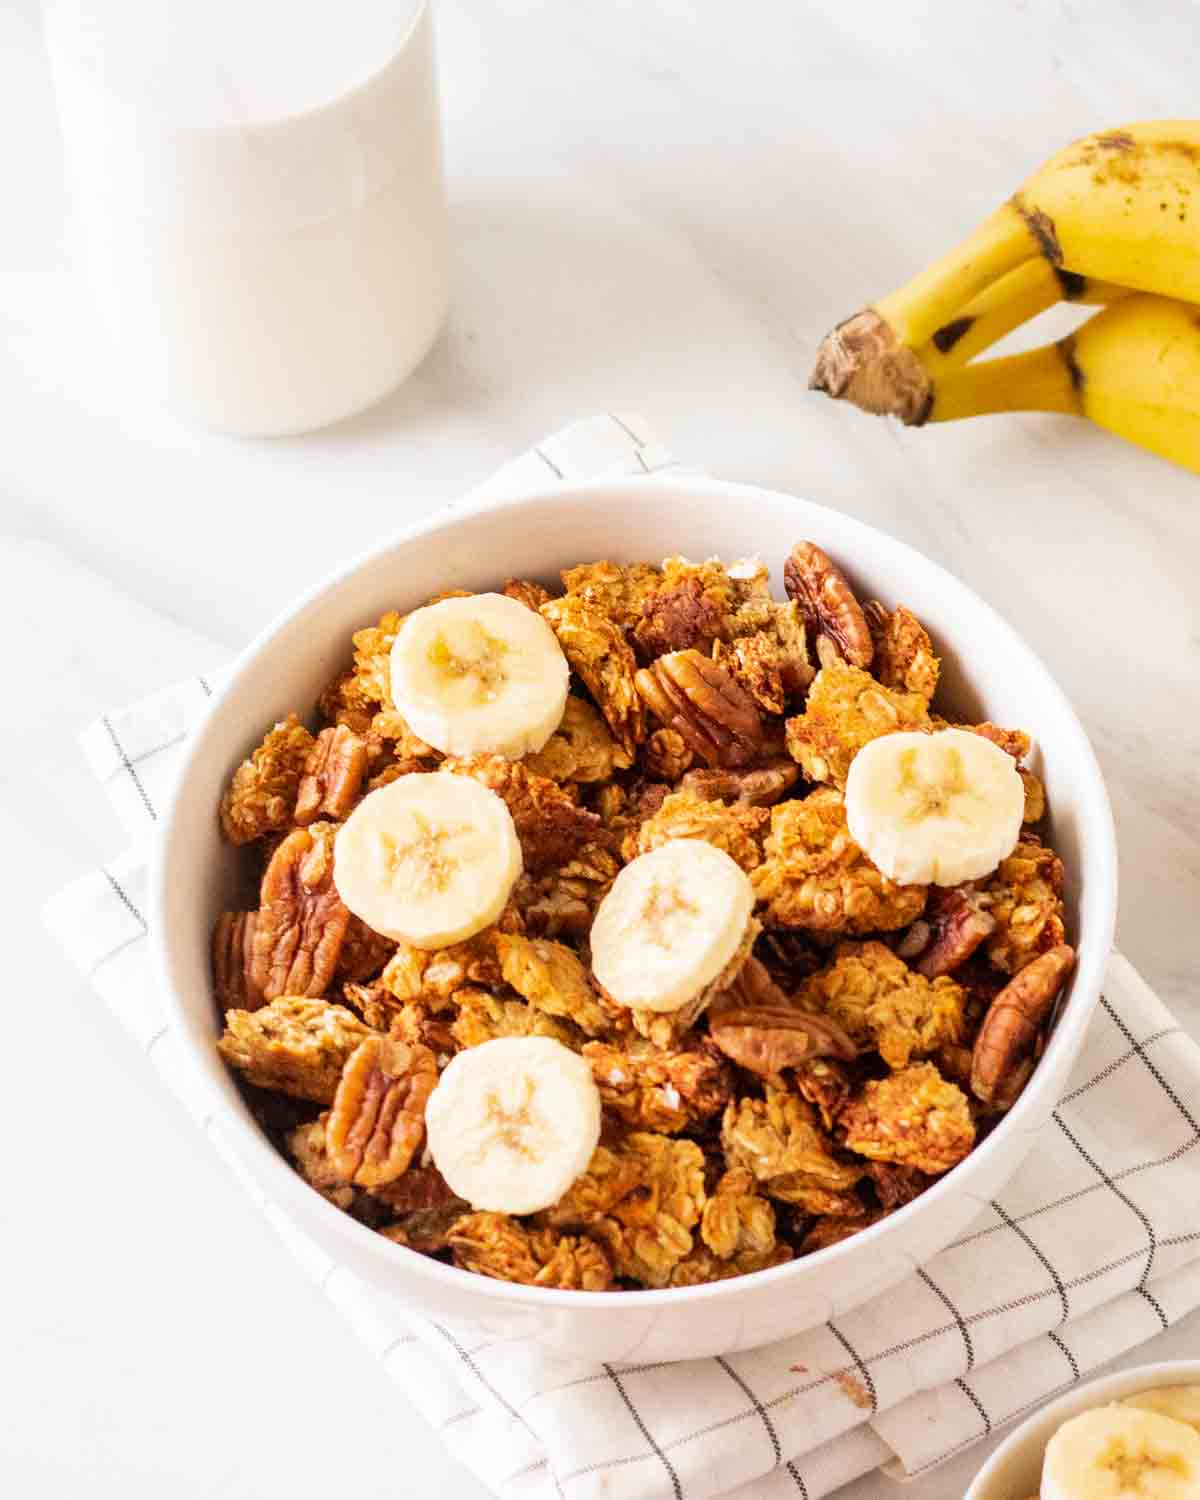 Granola in a bowl topped with sliced banana with milk and banana in the background.